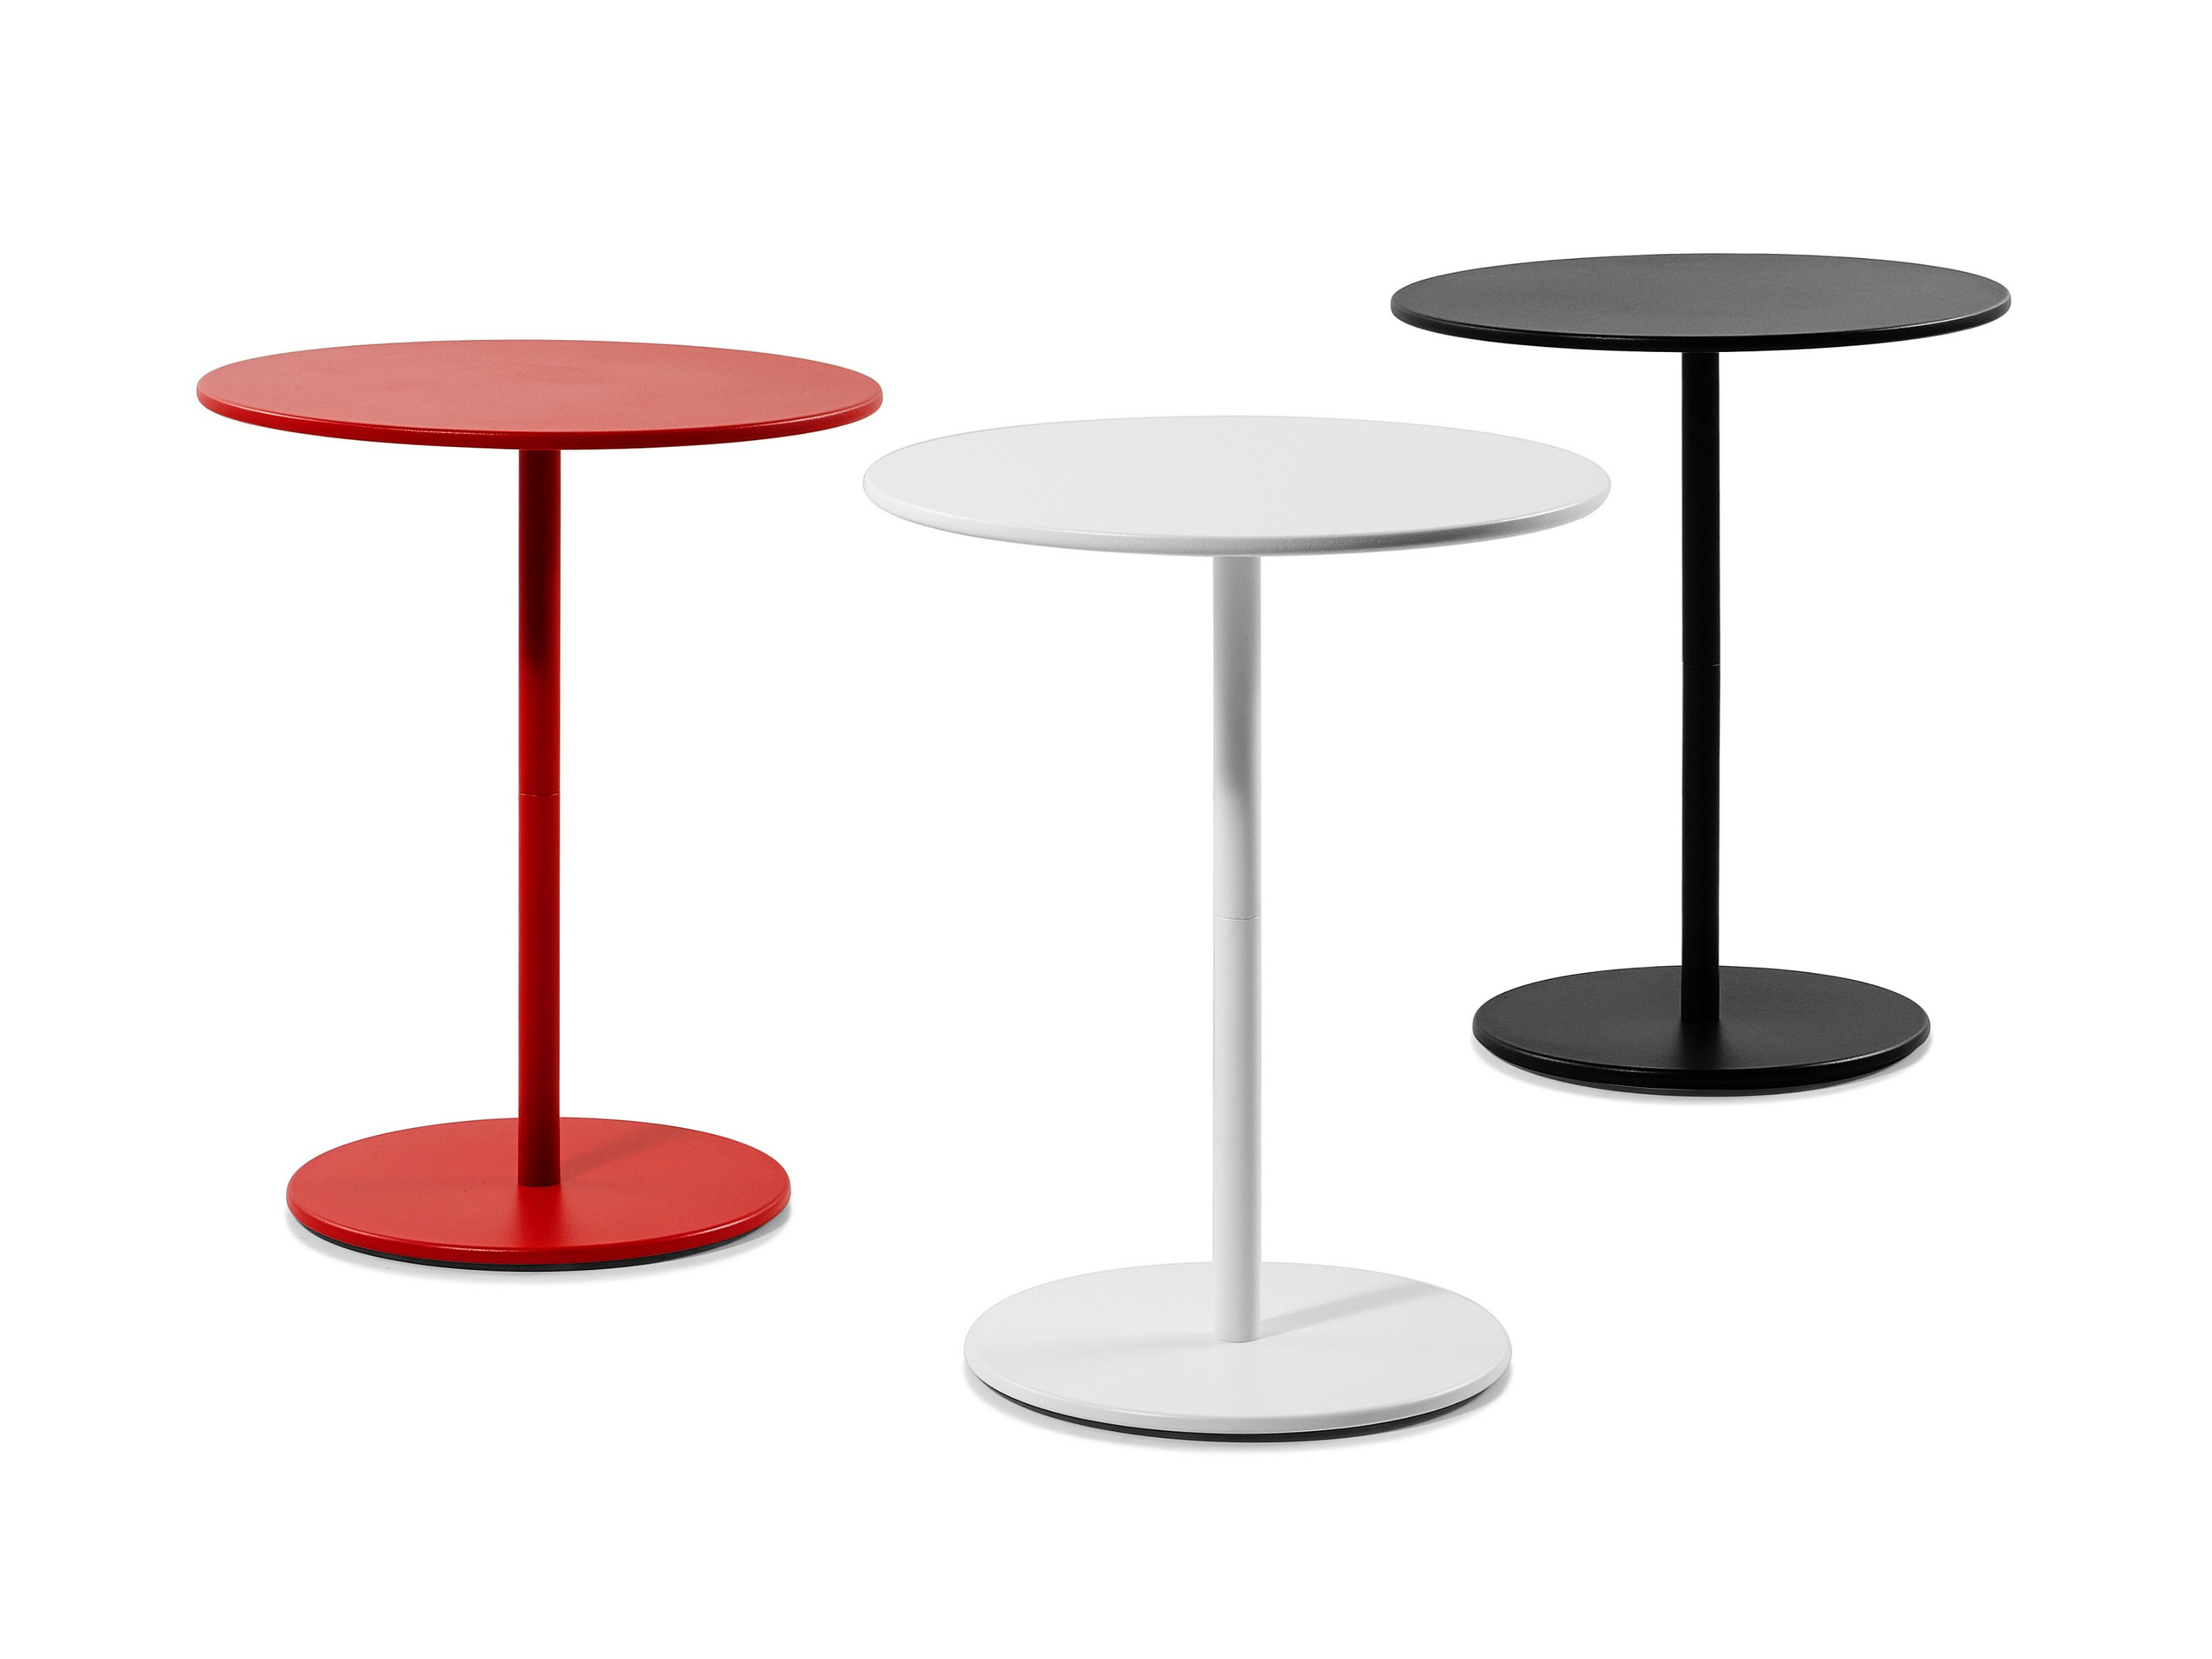 Round Steel Coffee Table Side By Plank Design Cisotti Laube